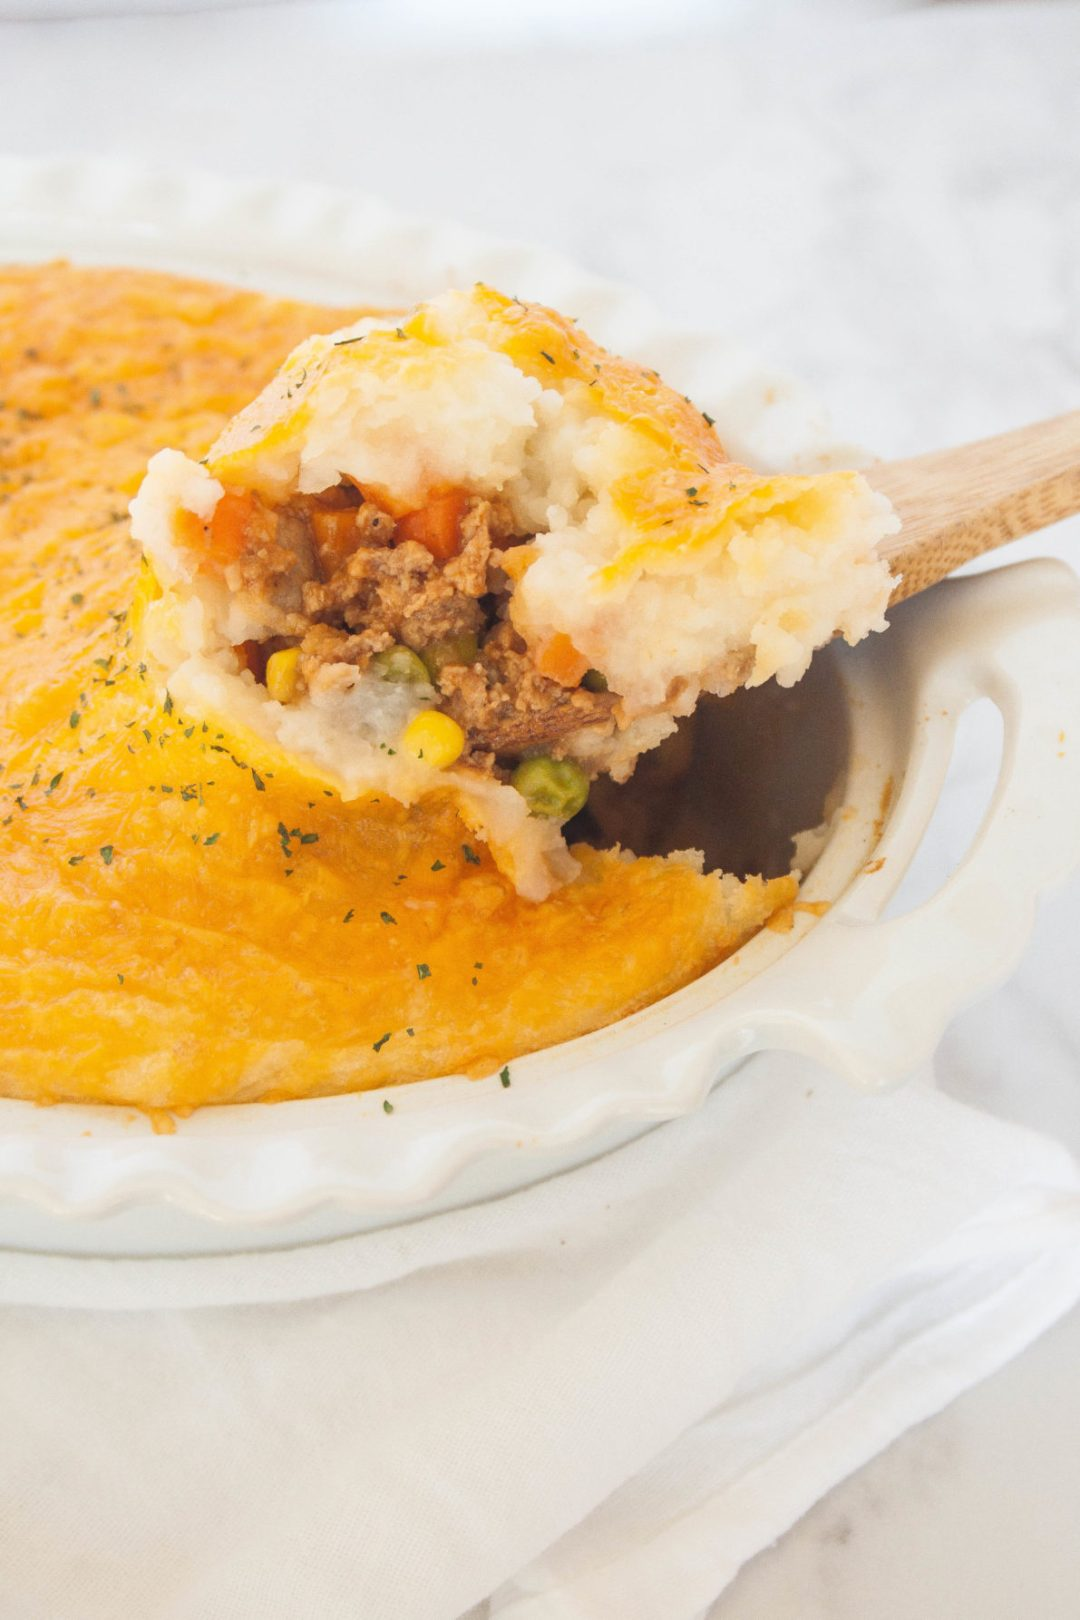 A traditional English meal, Shepherd's Pie is the ultimate comfort food. Topped with a layer of buttery mashed potatoes and cheese, everyone will be begging for seconds!